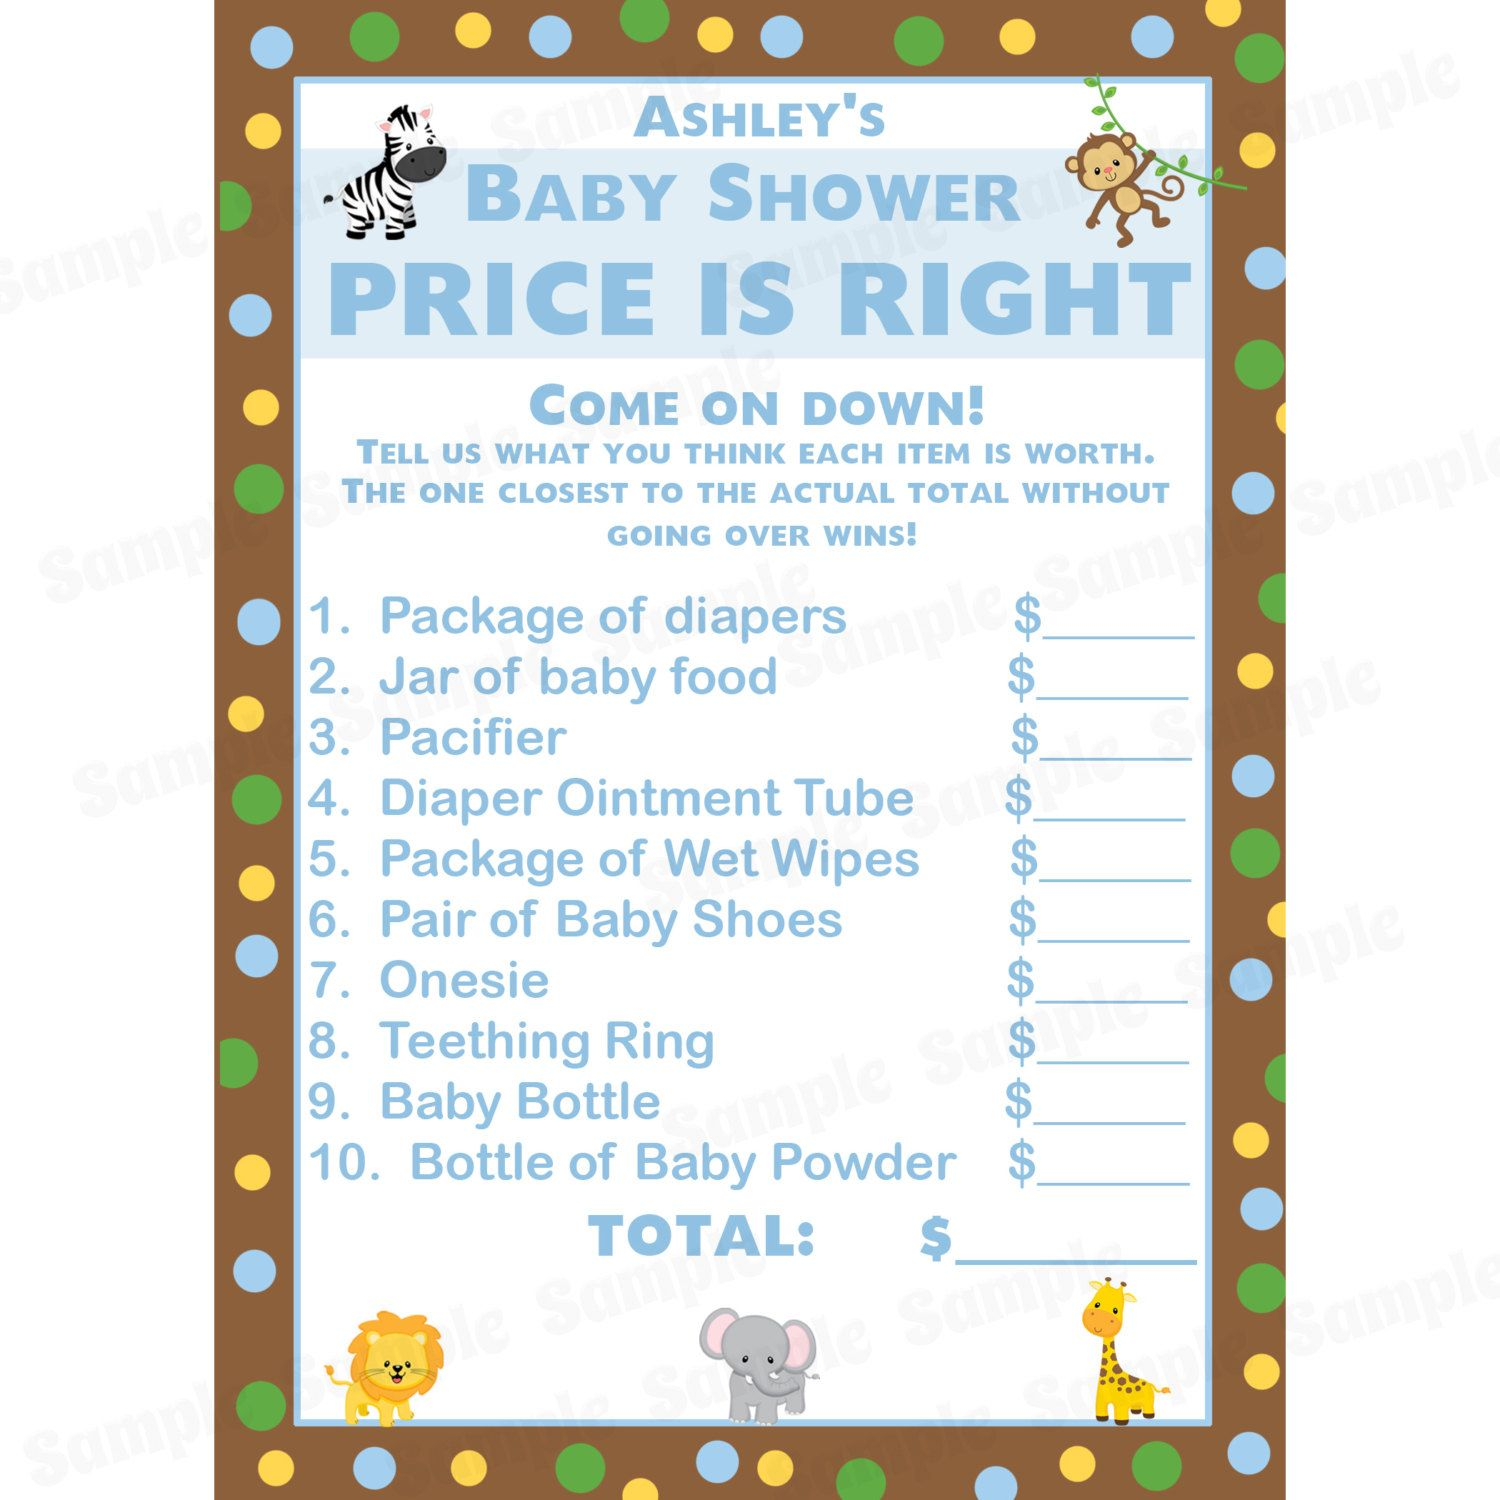 24 Personalized Baby Shower Price Is Right Game Cards   Zoo Animals